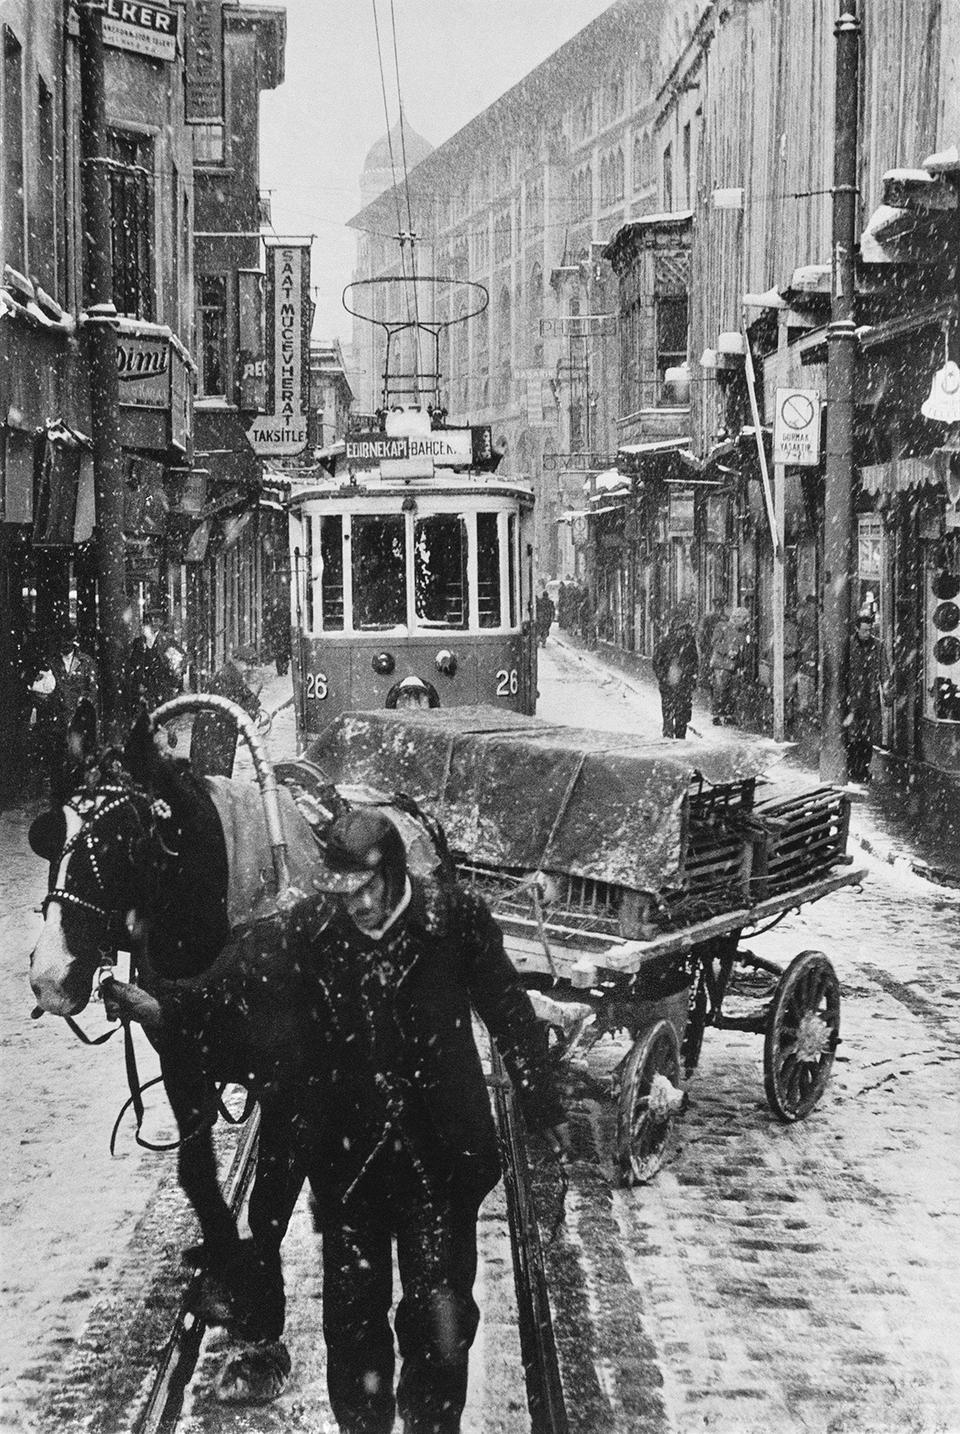 A horse cart and a tram in Sirkeci on a winter's day, 1956.